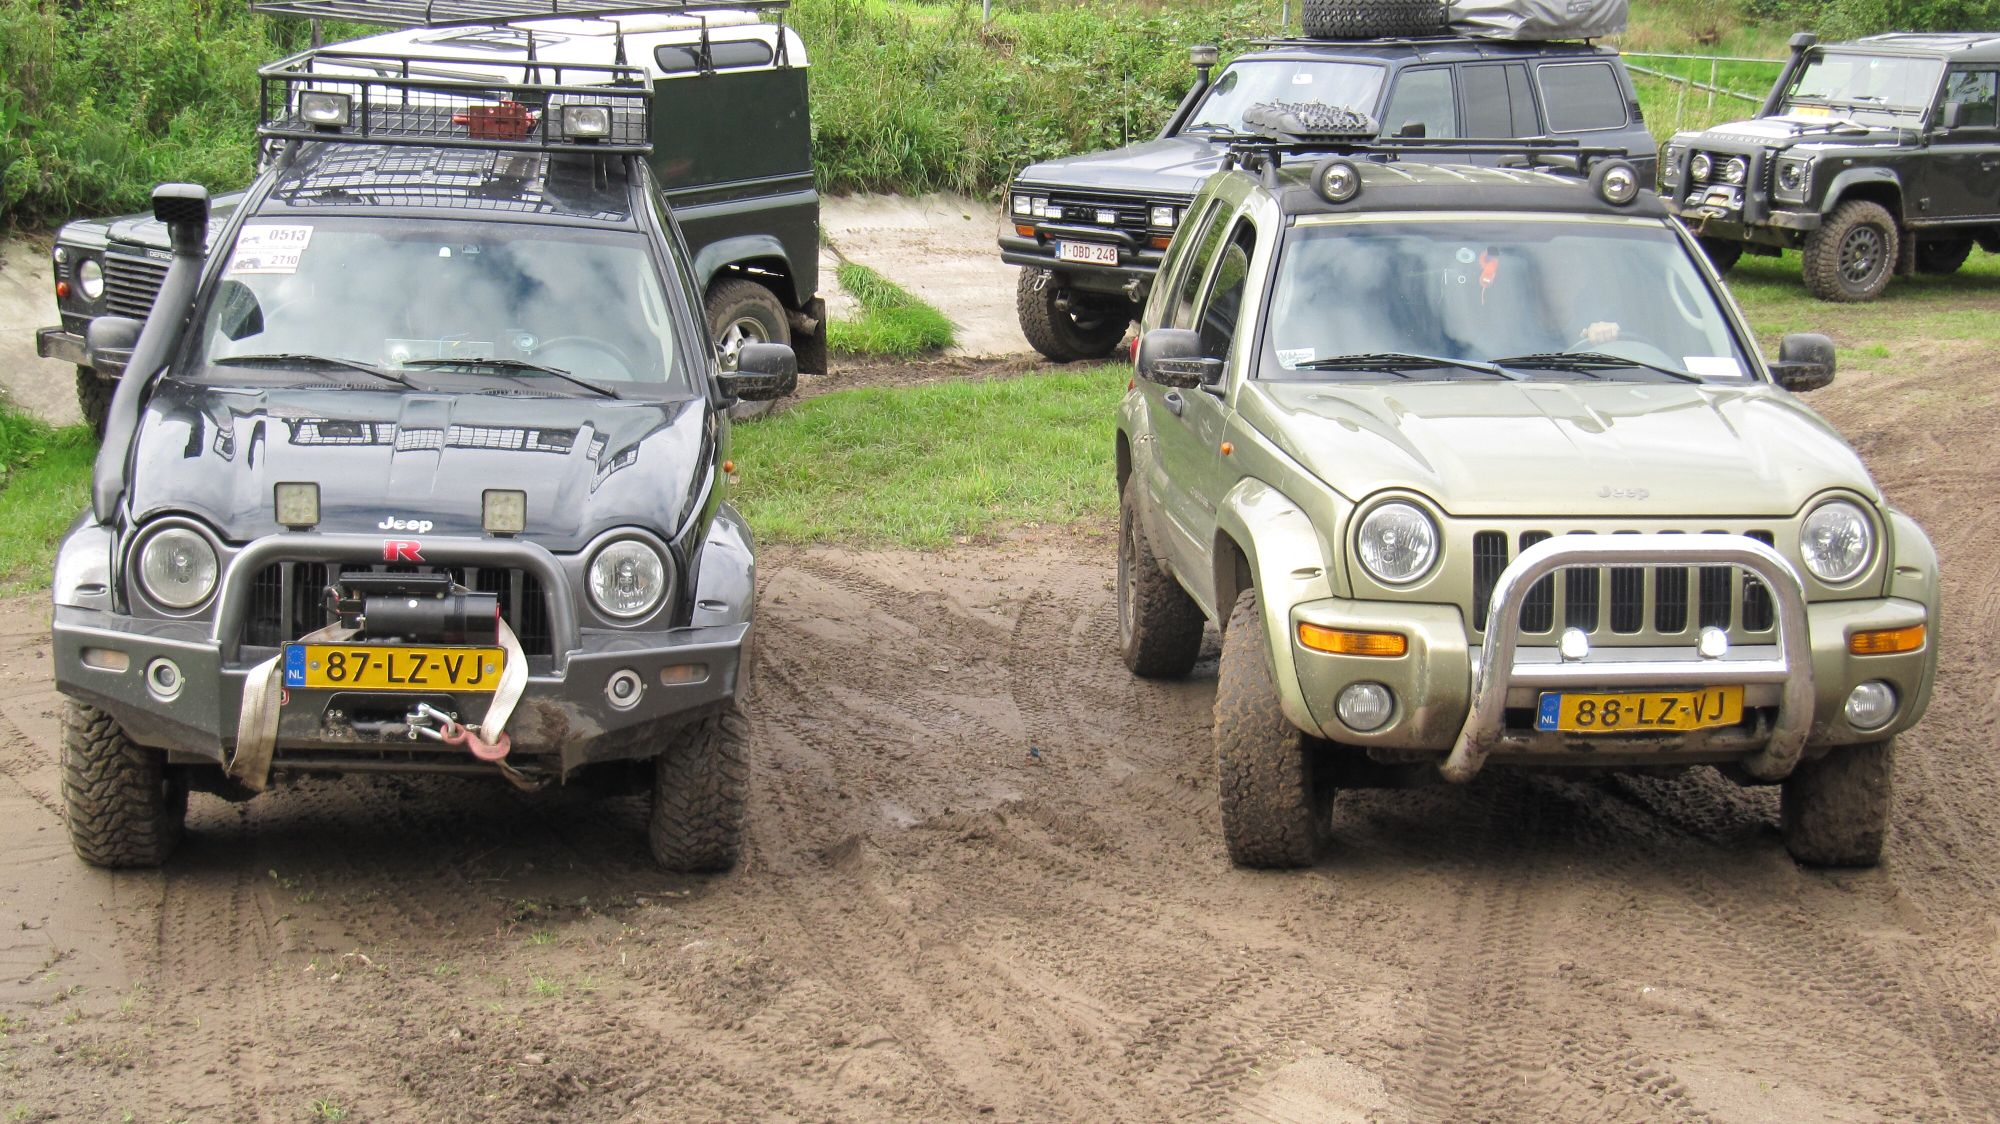 4wd festival Oss Holland 2015 Jeep KJ finally after 12 years I met